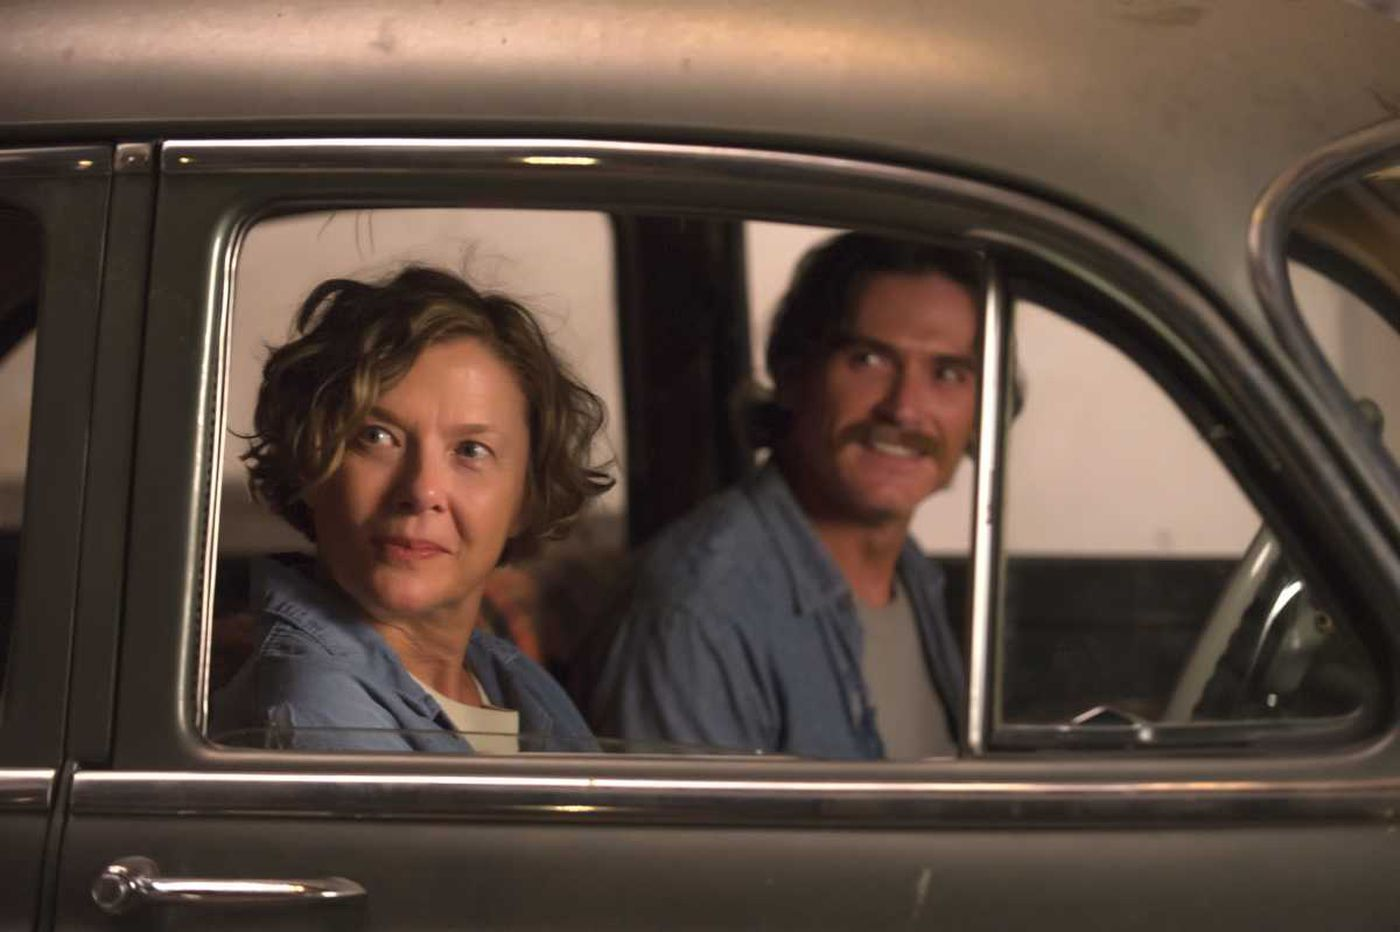 Annette Bening explores motherhood and mood swings in her latest gem, '20th Century Women'